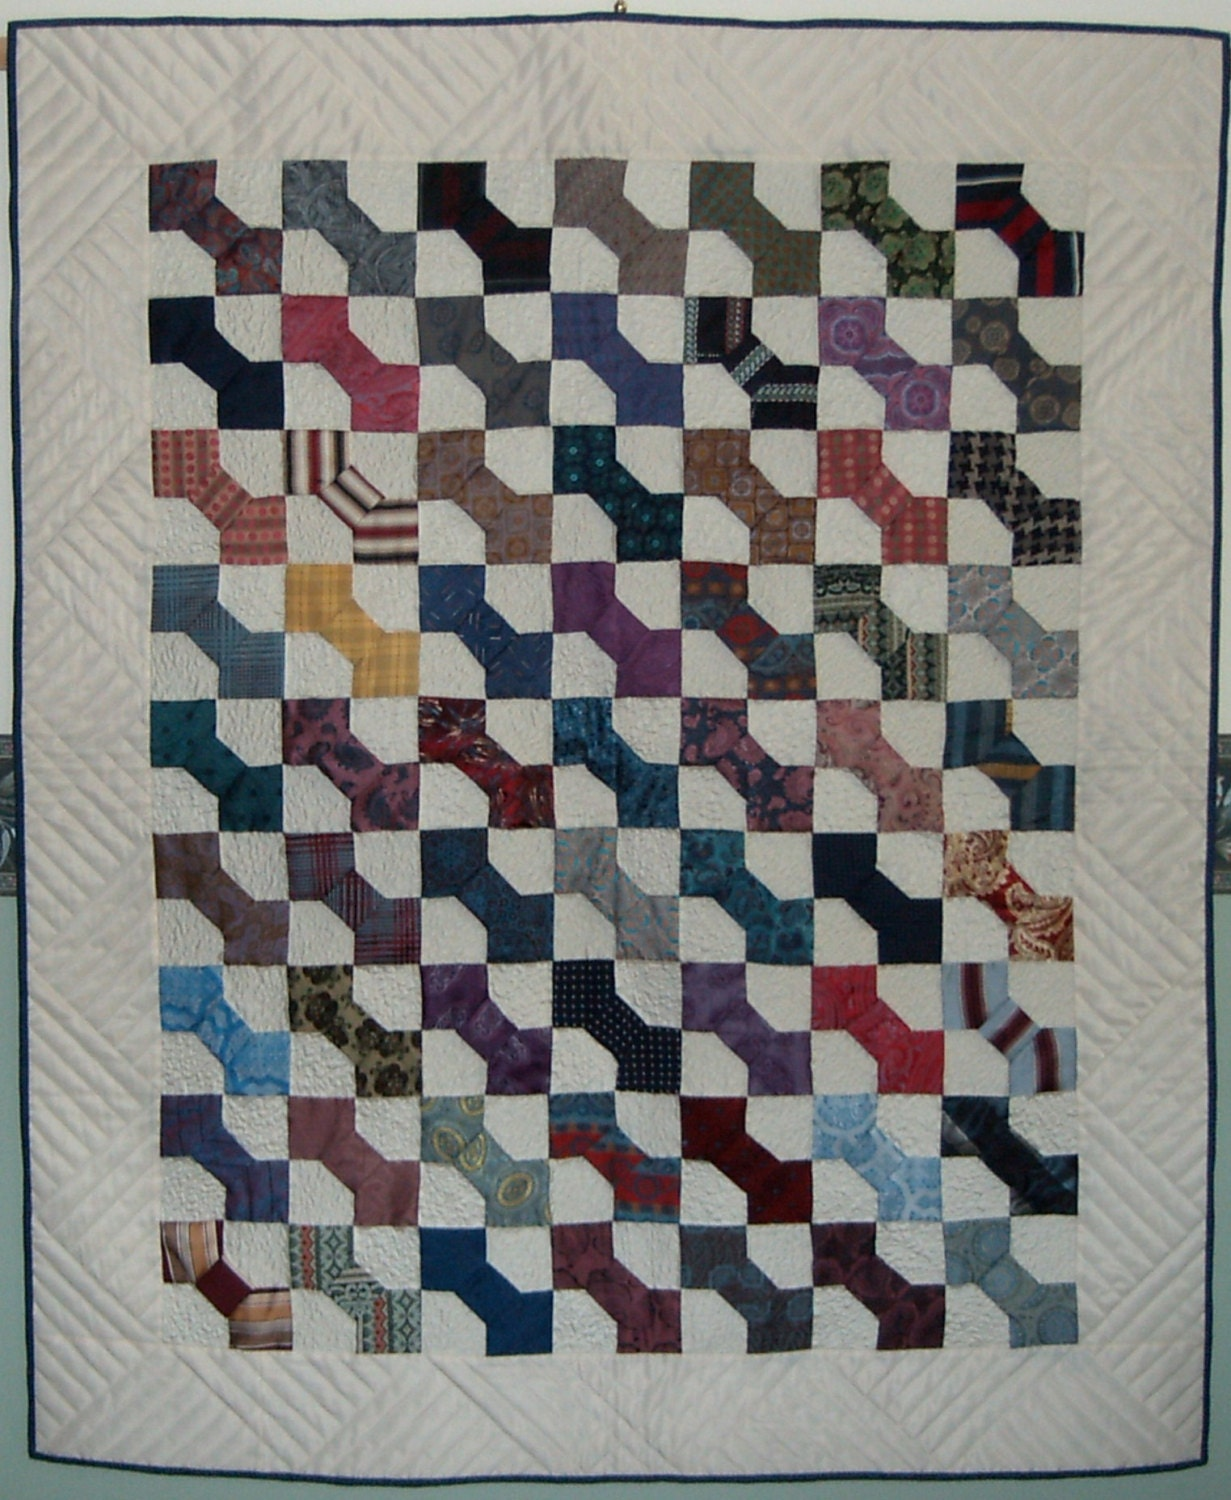 SILK TIES Patchwork Quilt Bow Tie Quilt Recycled quilt